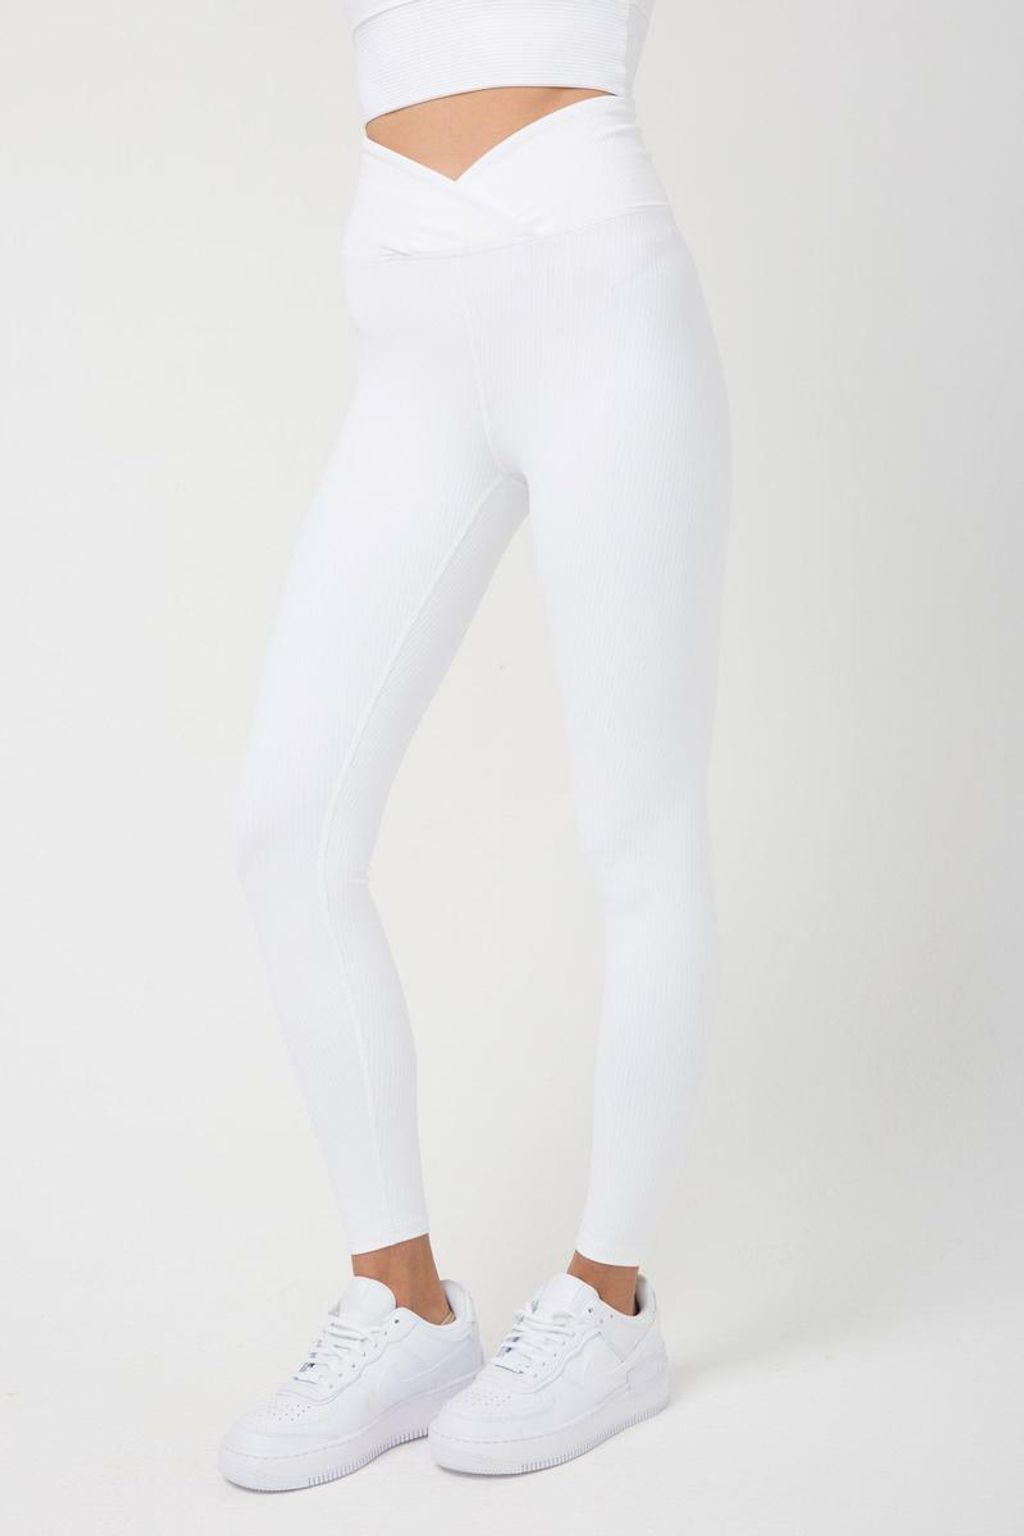 Ribbed-Veronica-Legging-Leggings-Year-of-Ours-White-Extra-Small-7_800x.jpg